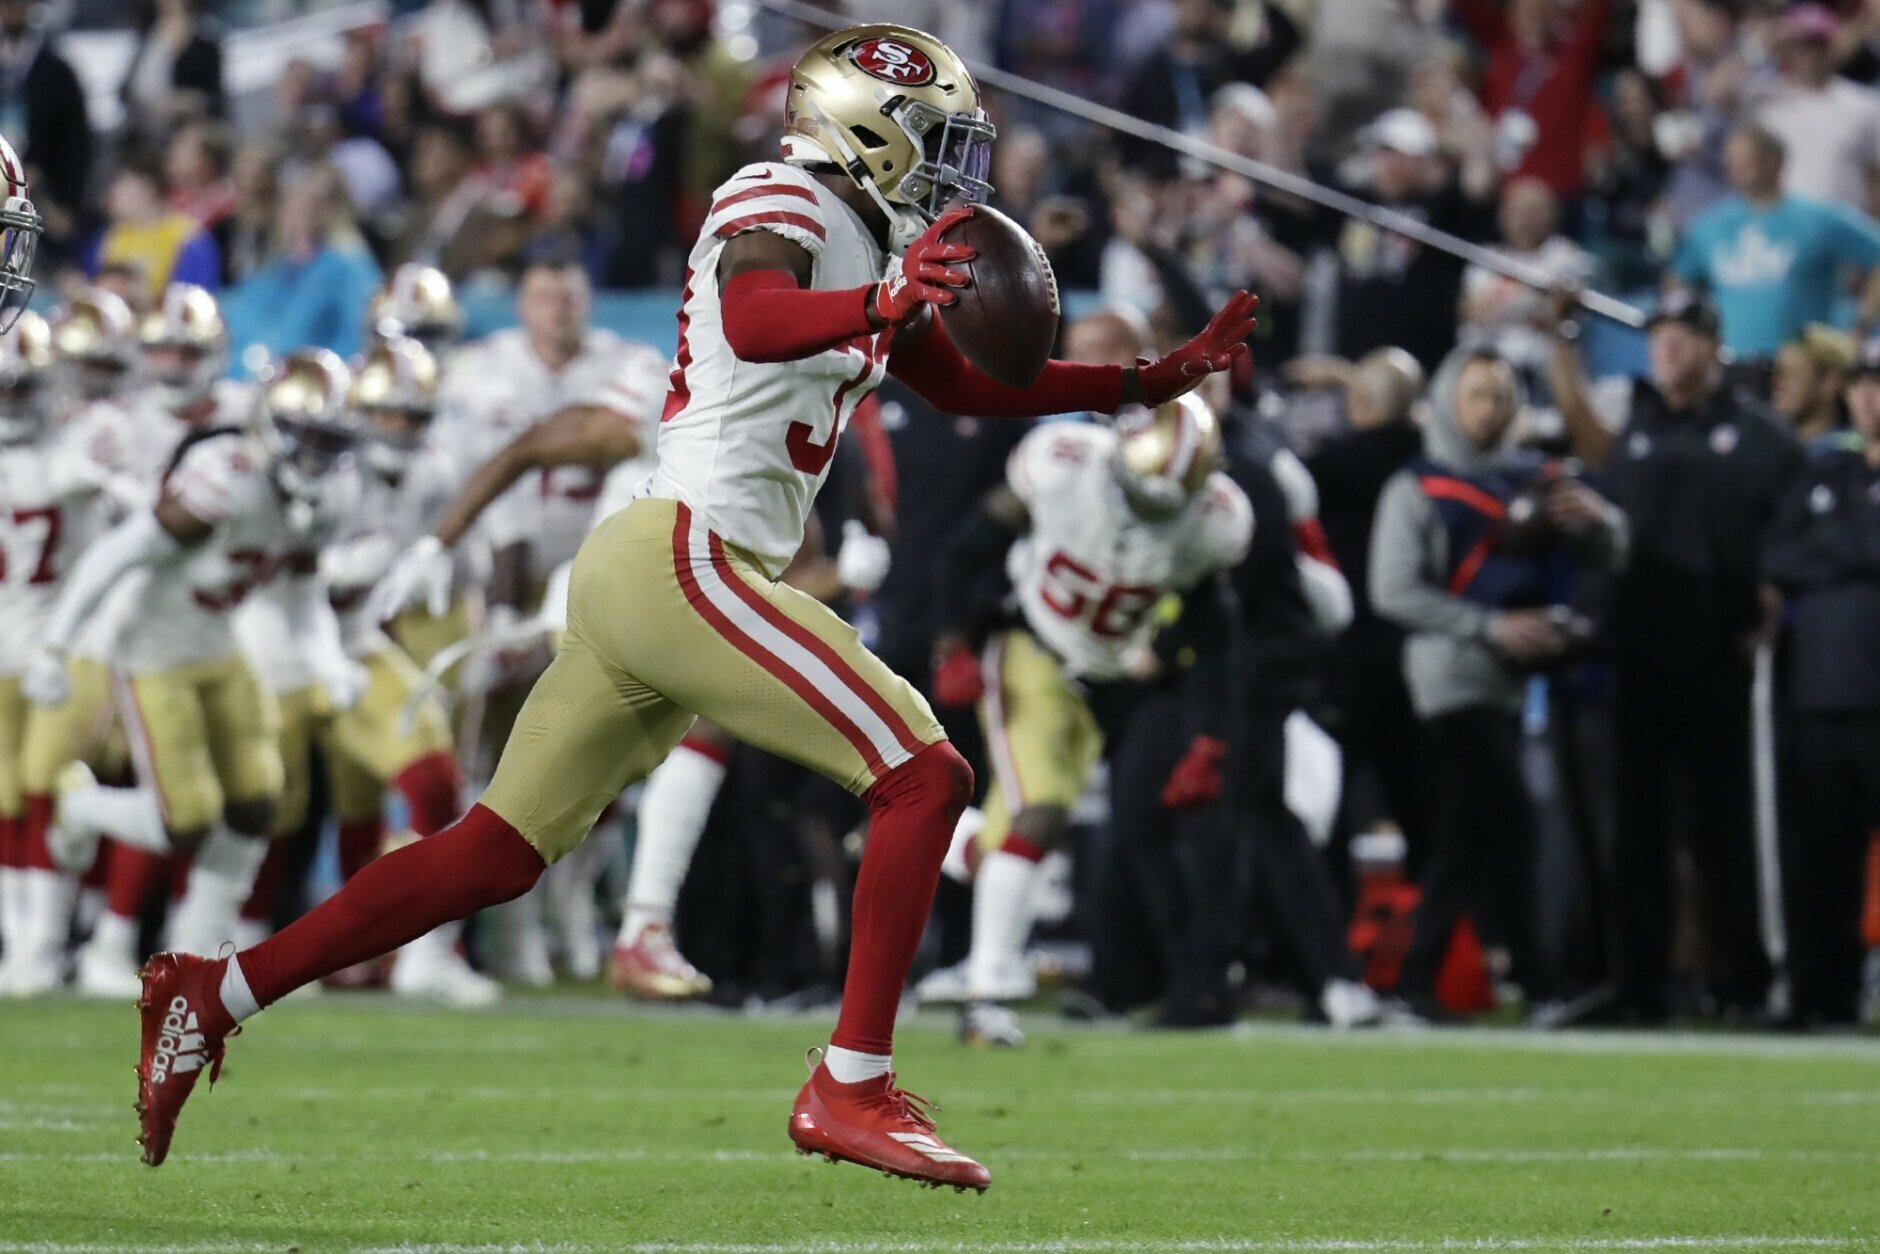 San Francisco 49ers' Tarvarius Moore, right, celebrates after intercepting a pass against the Kansas City Chiefs during the second half of the NFL Super Bowl 54 football game, Sunday, Feb. 2, 2020, in Miami Gardens, Fla. (AP Photo/Lynne Sladky)